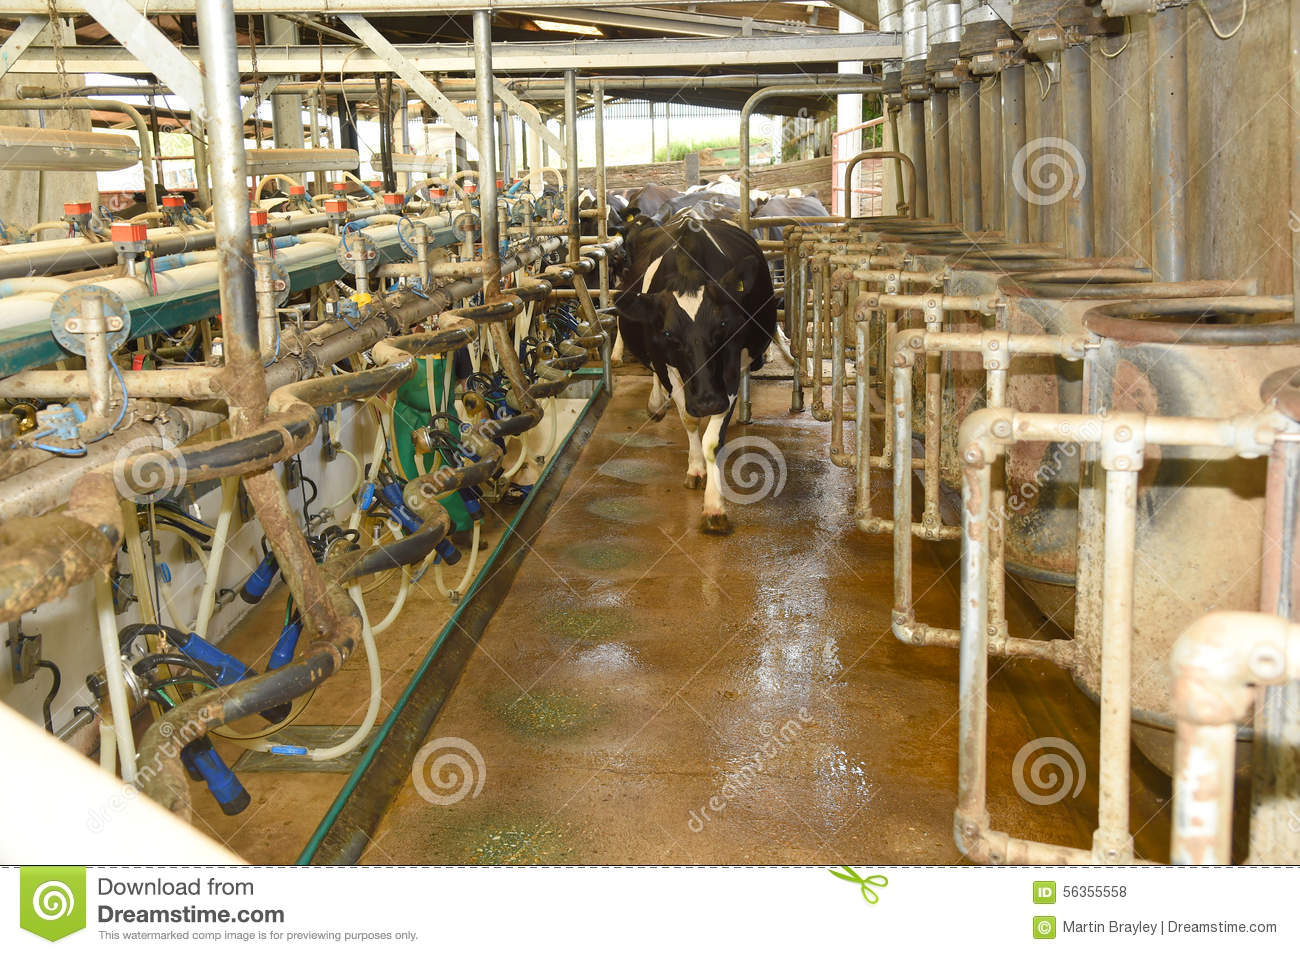 ^ Dairy Farm Shed Plans In India. ourtesy hehinducom. Palruf ow ...